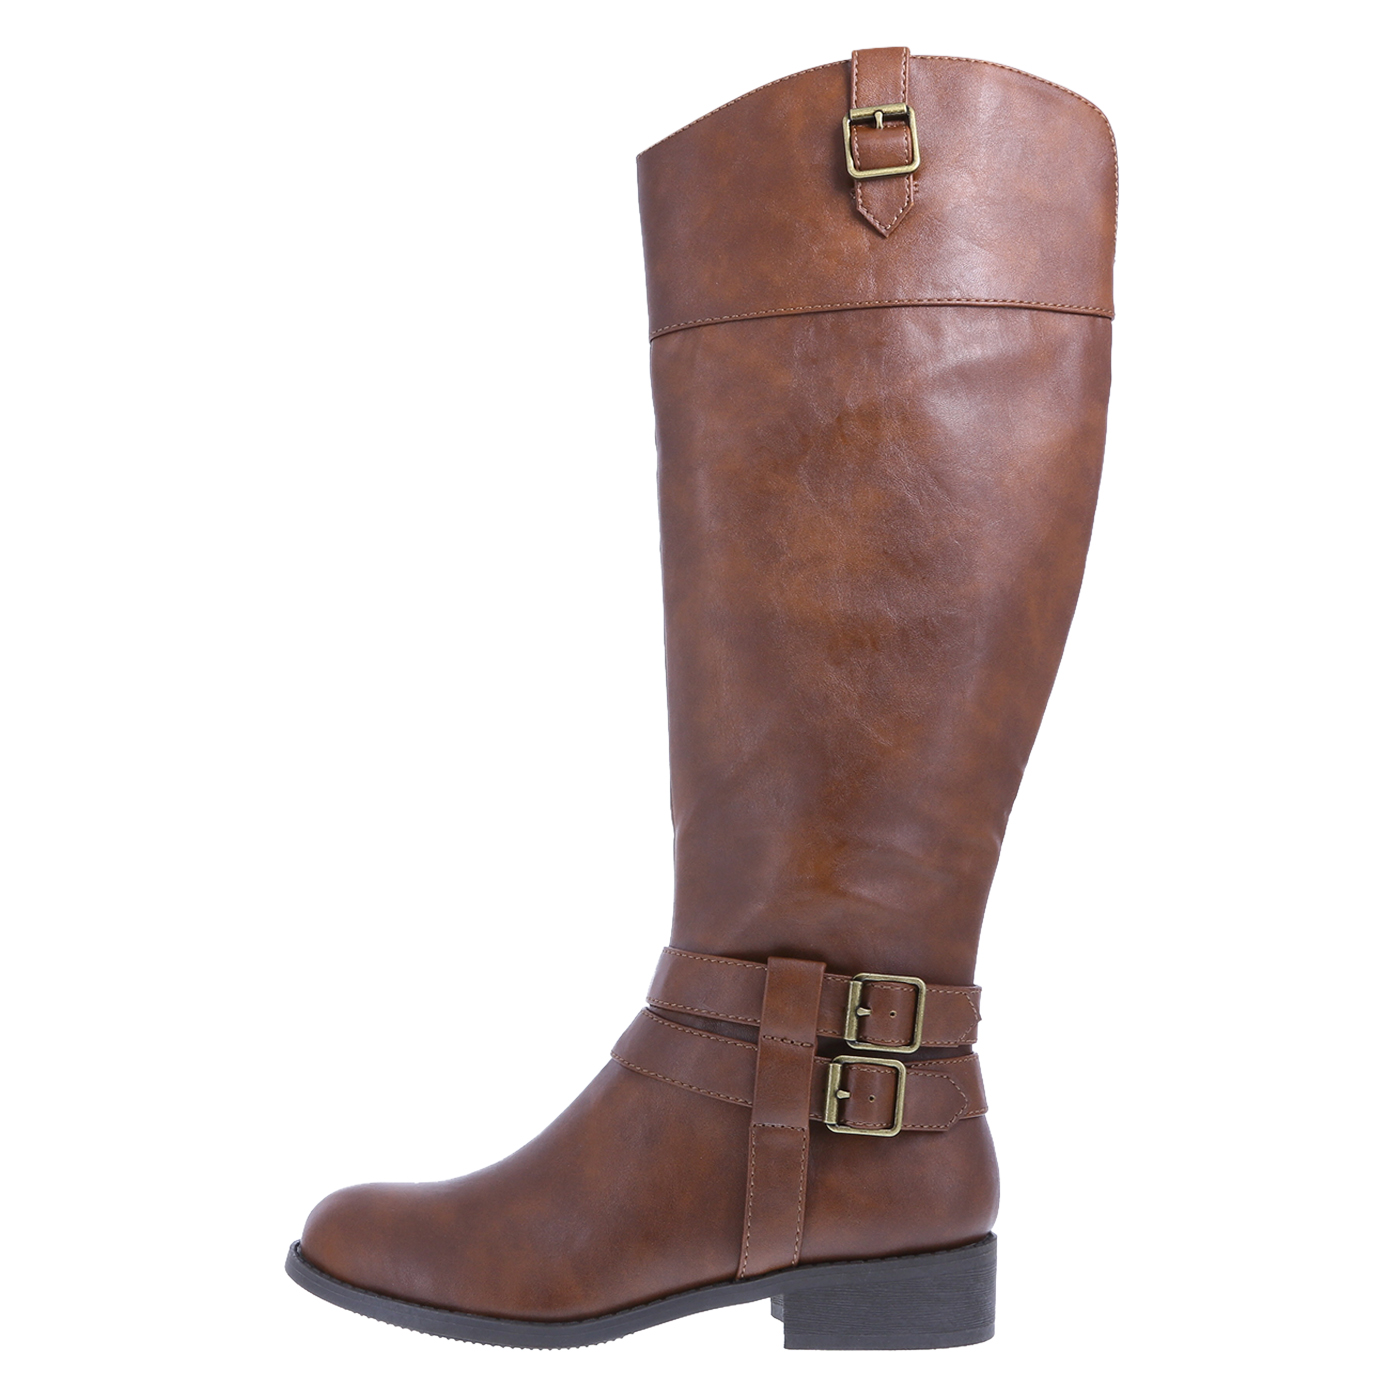 riding boots american eagle womenu0027s smarty riding boot | payless GXHEGIC